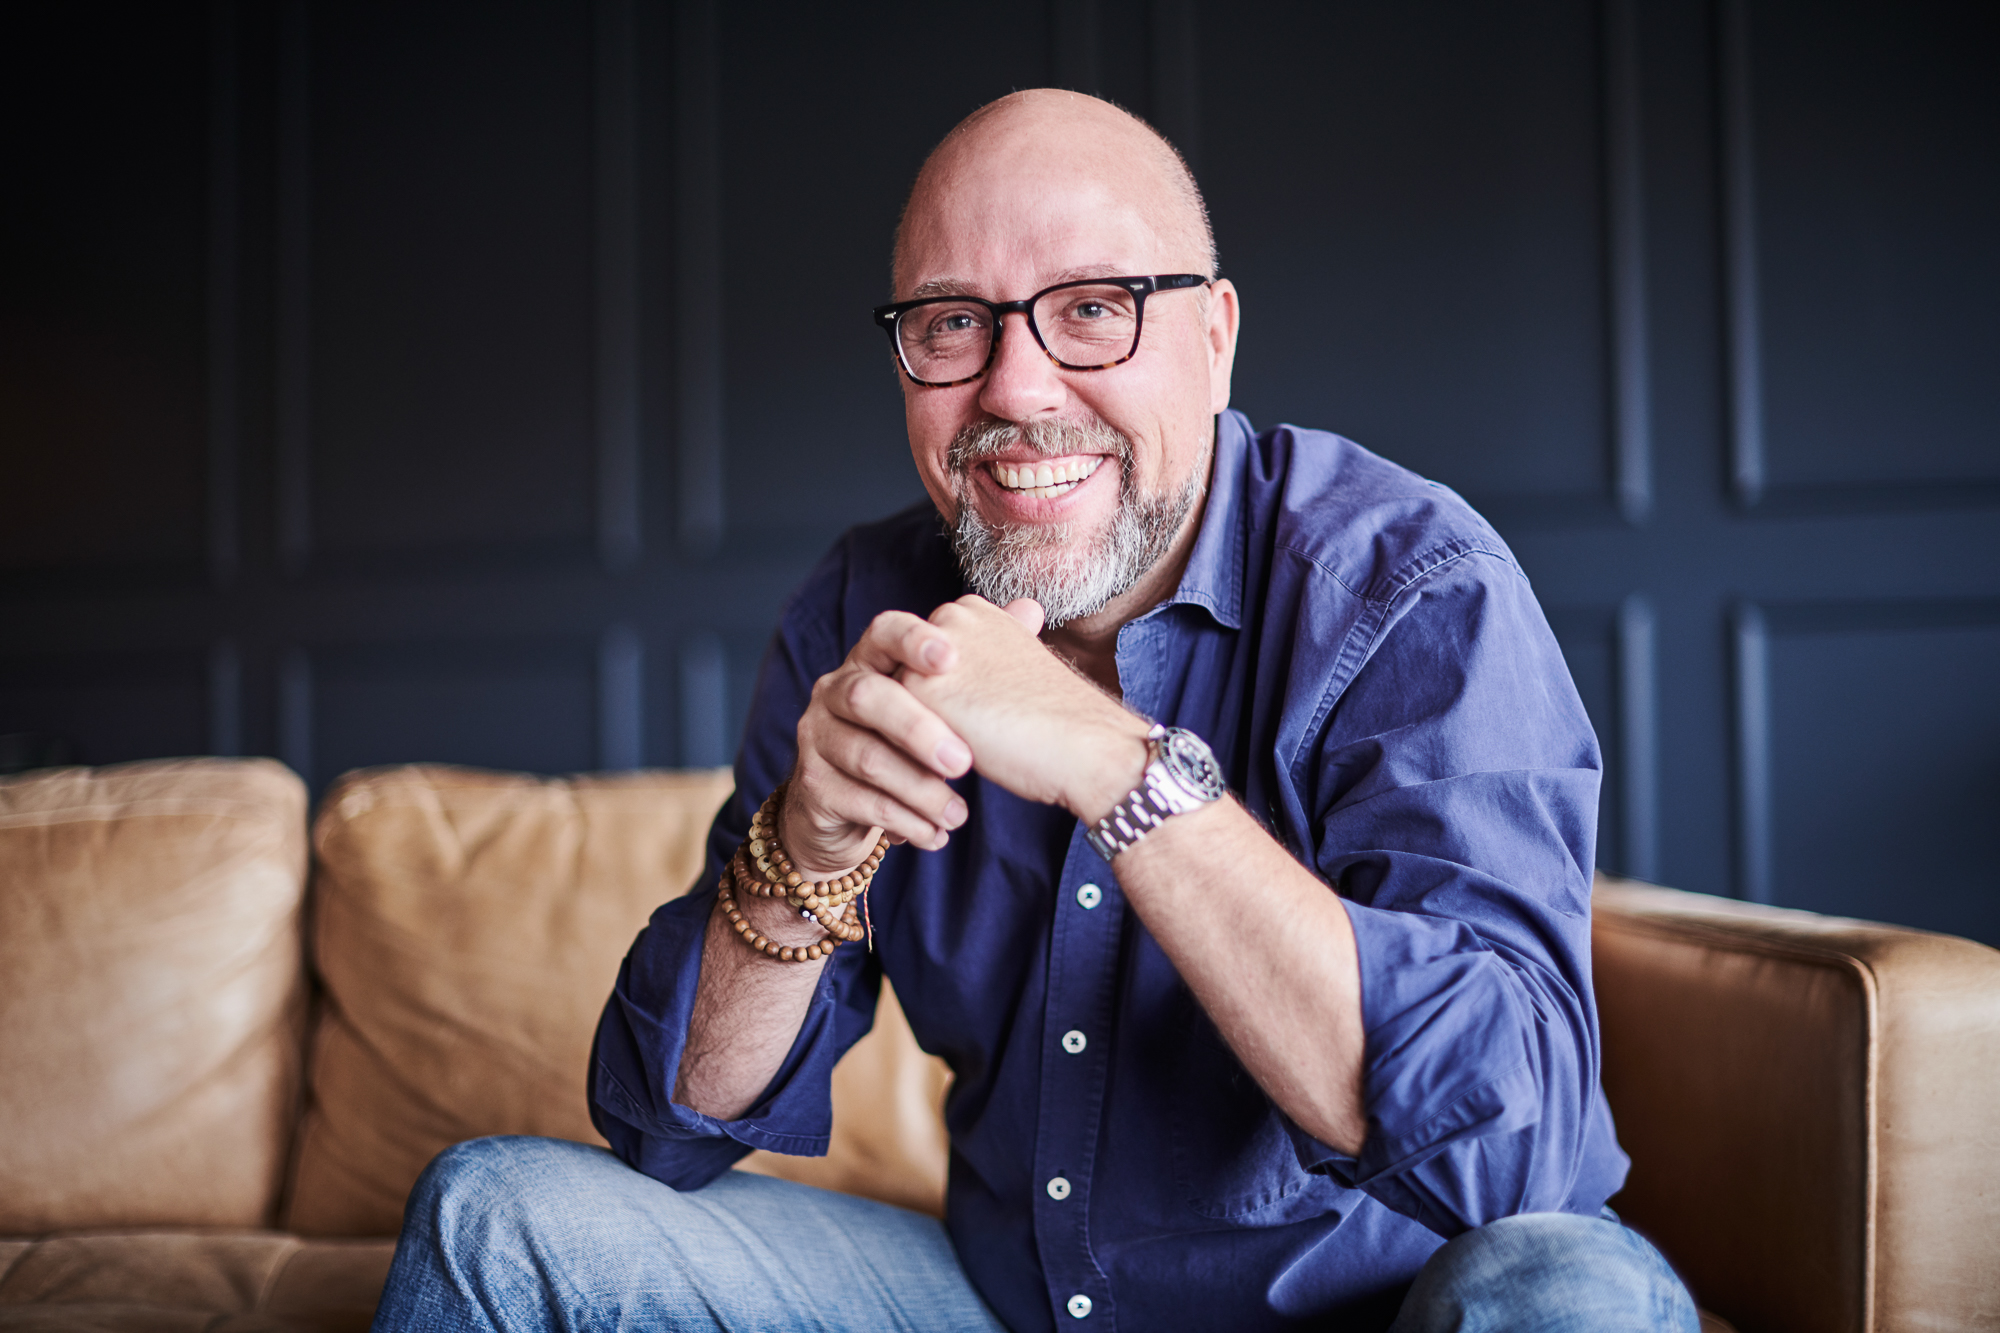 Episode 2: David Duchemin: Being more Alive in the world through photography - World & humanitarian photographer, author, adventurer, and entrepreneur